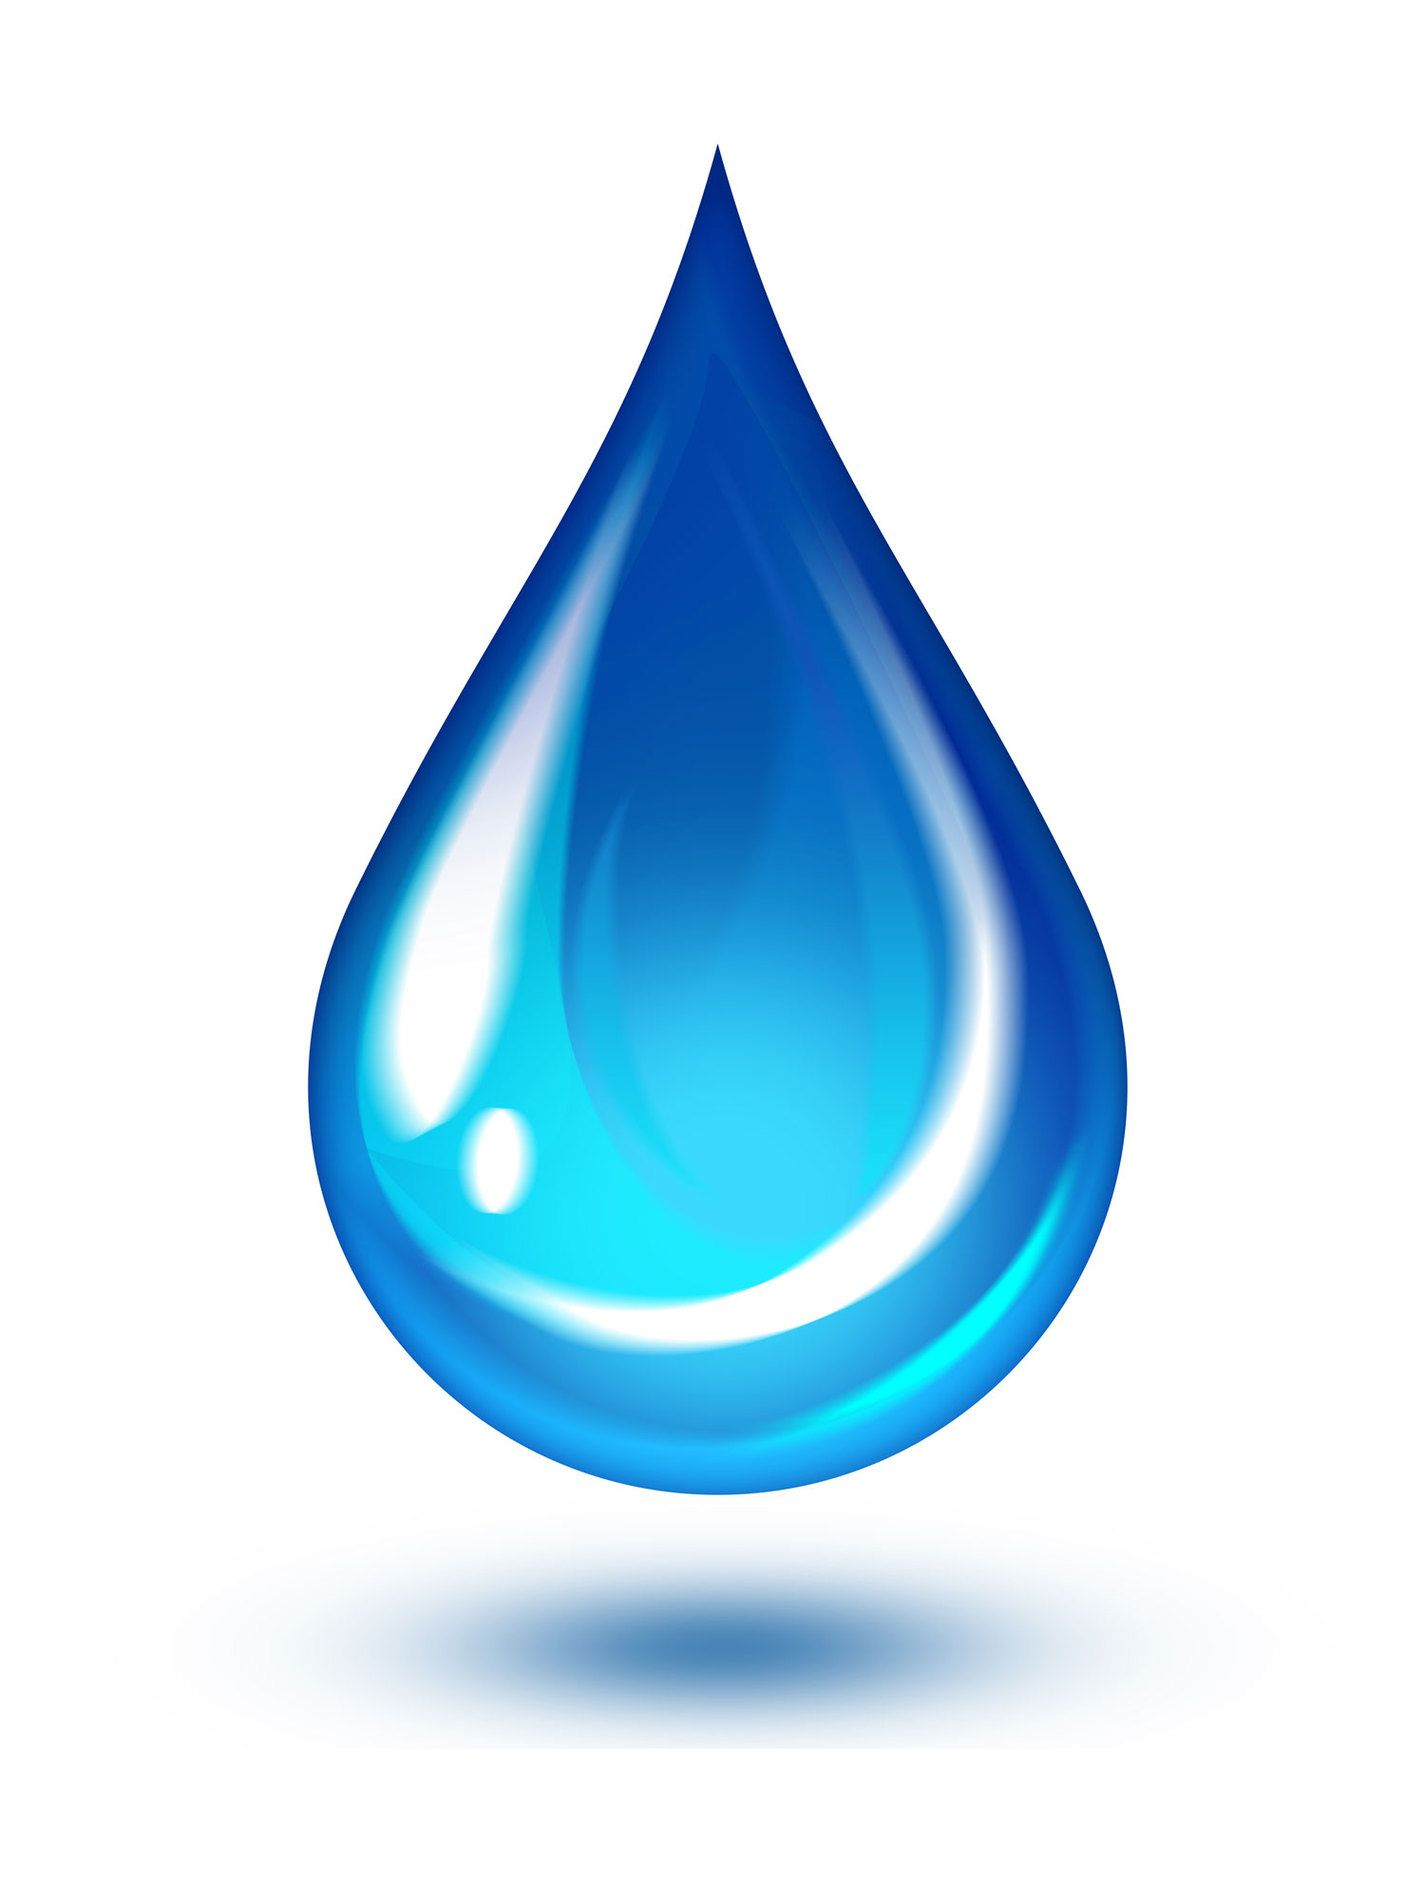 Drop clipart. Water symbol free to